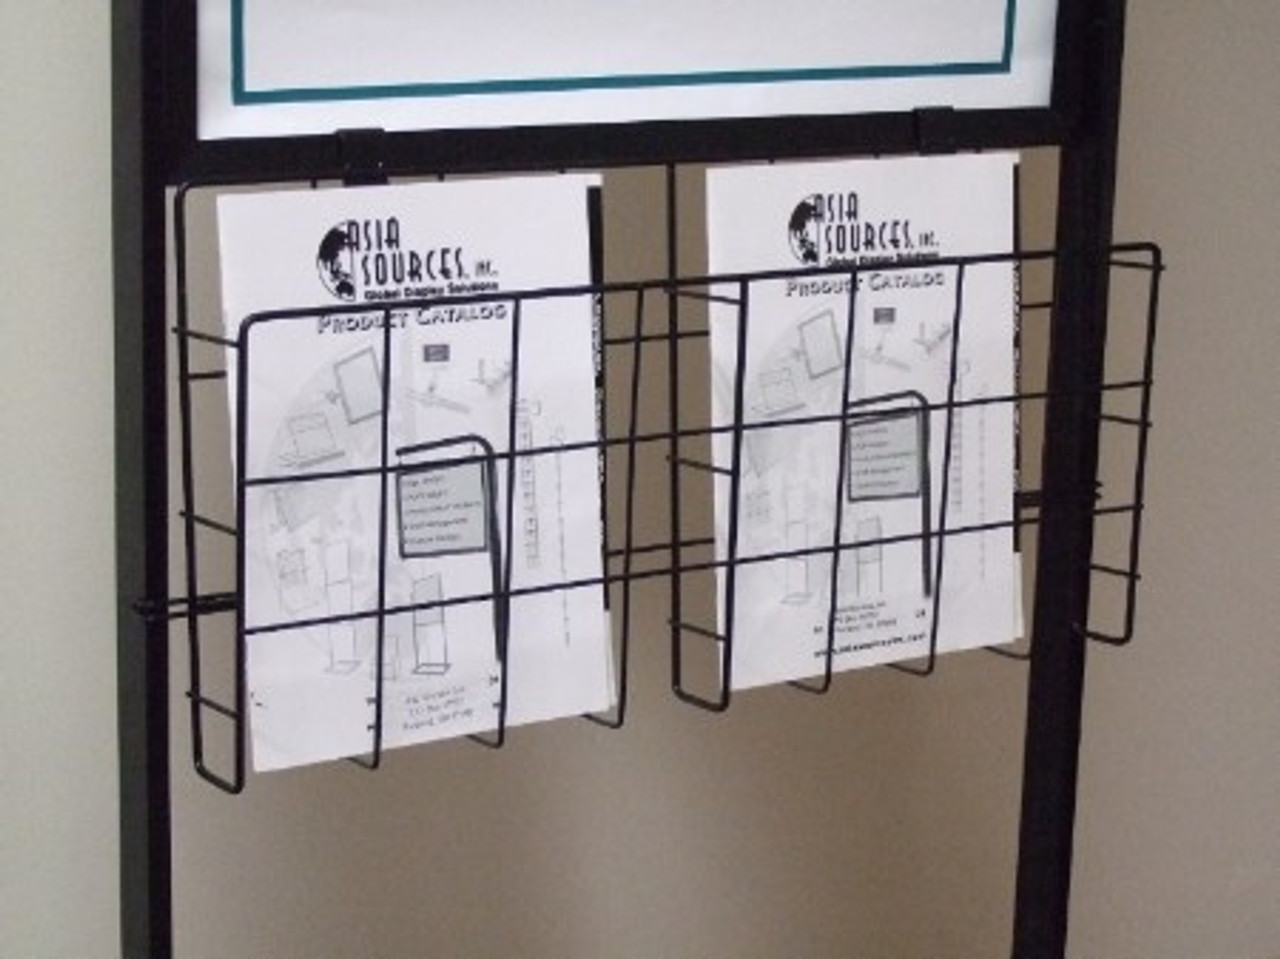 Upright Wire Basket Literature Holder - Attaches to Econo and Premium Poster Stands - Black Finish